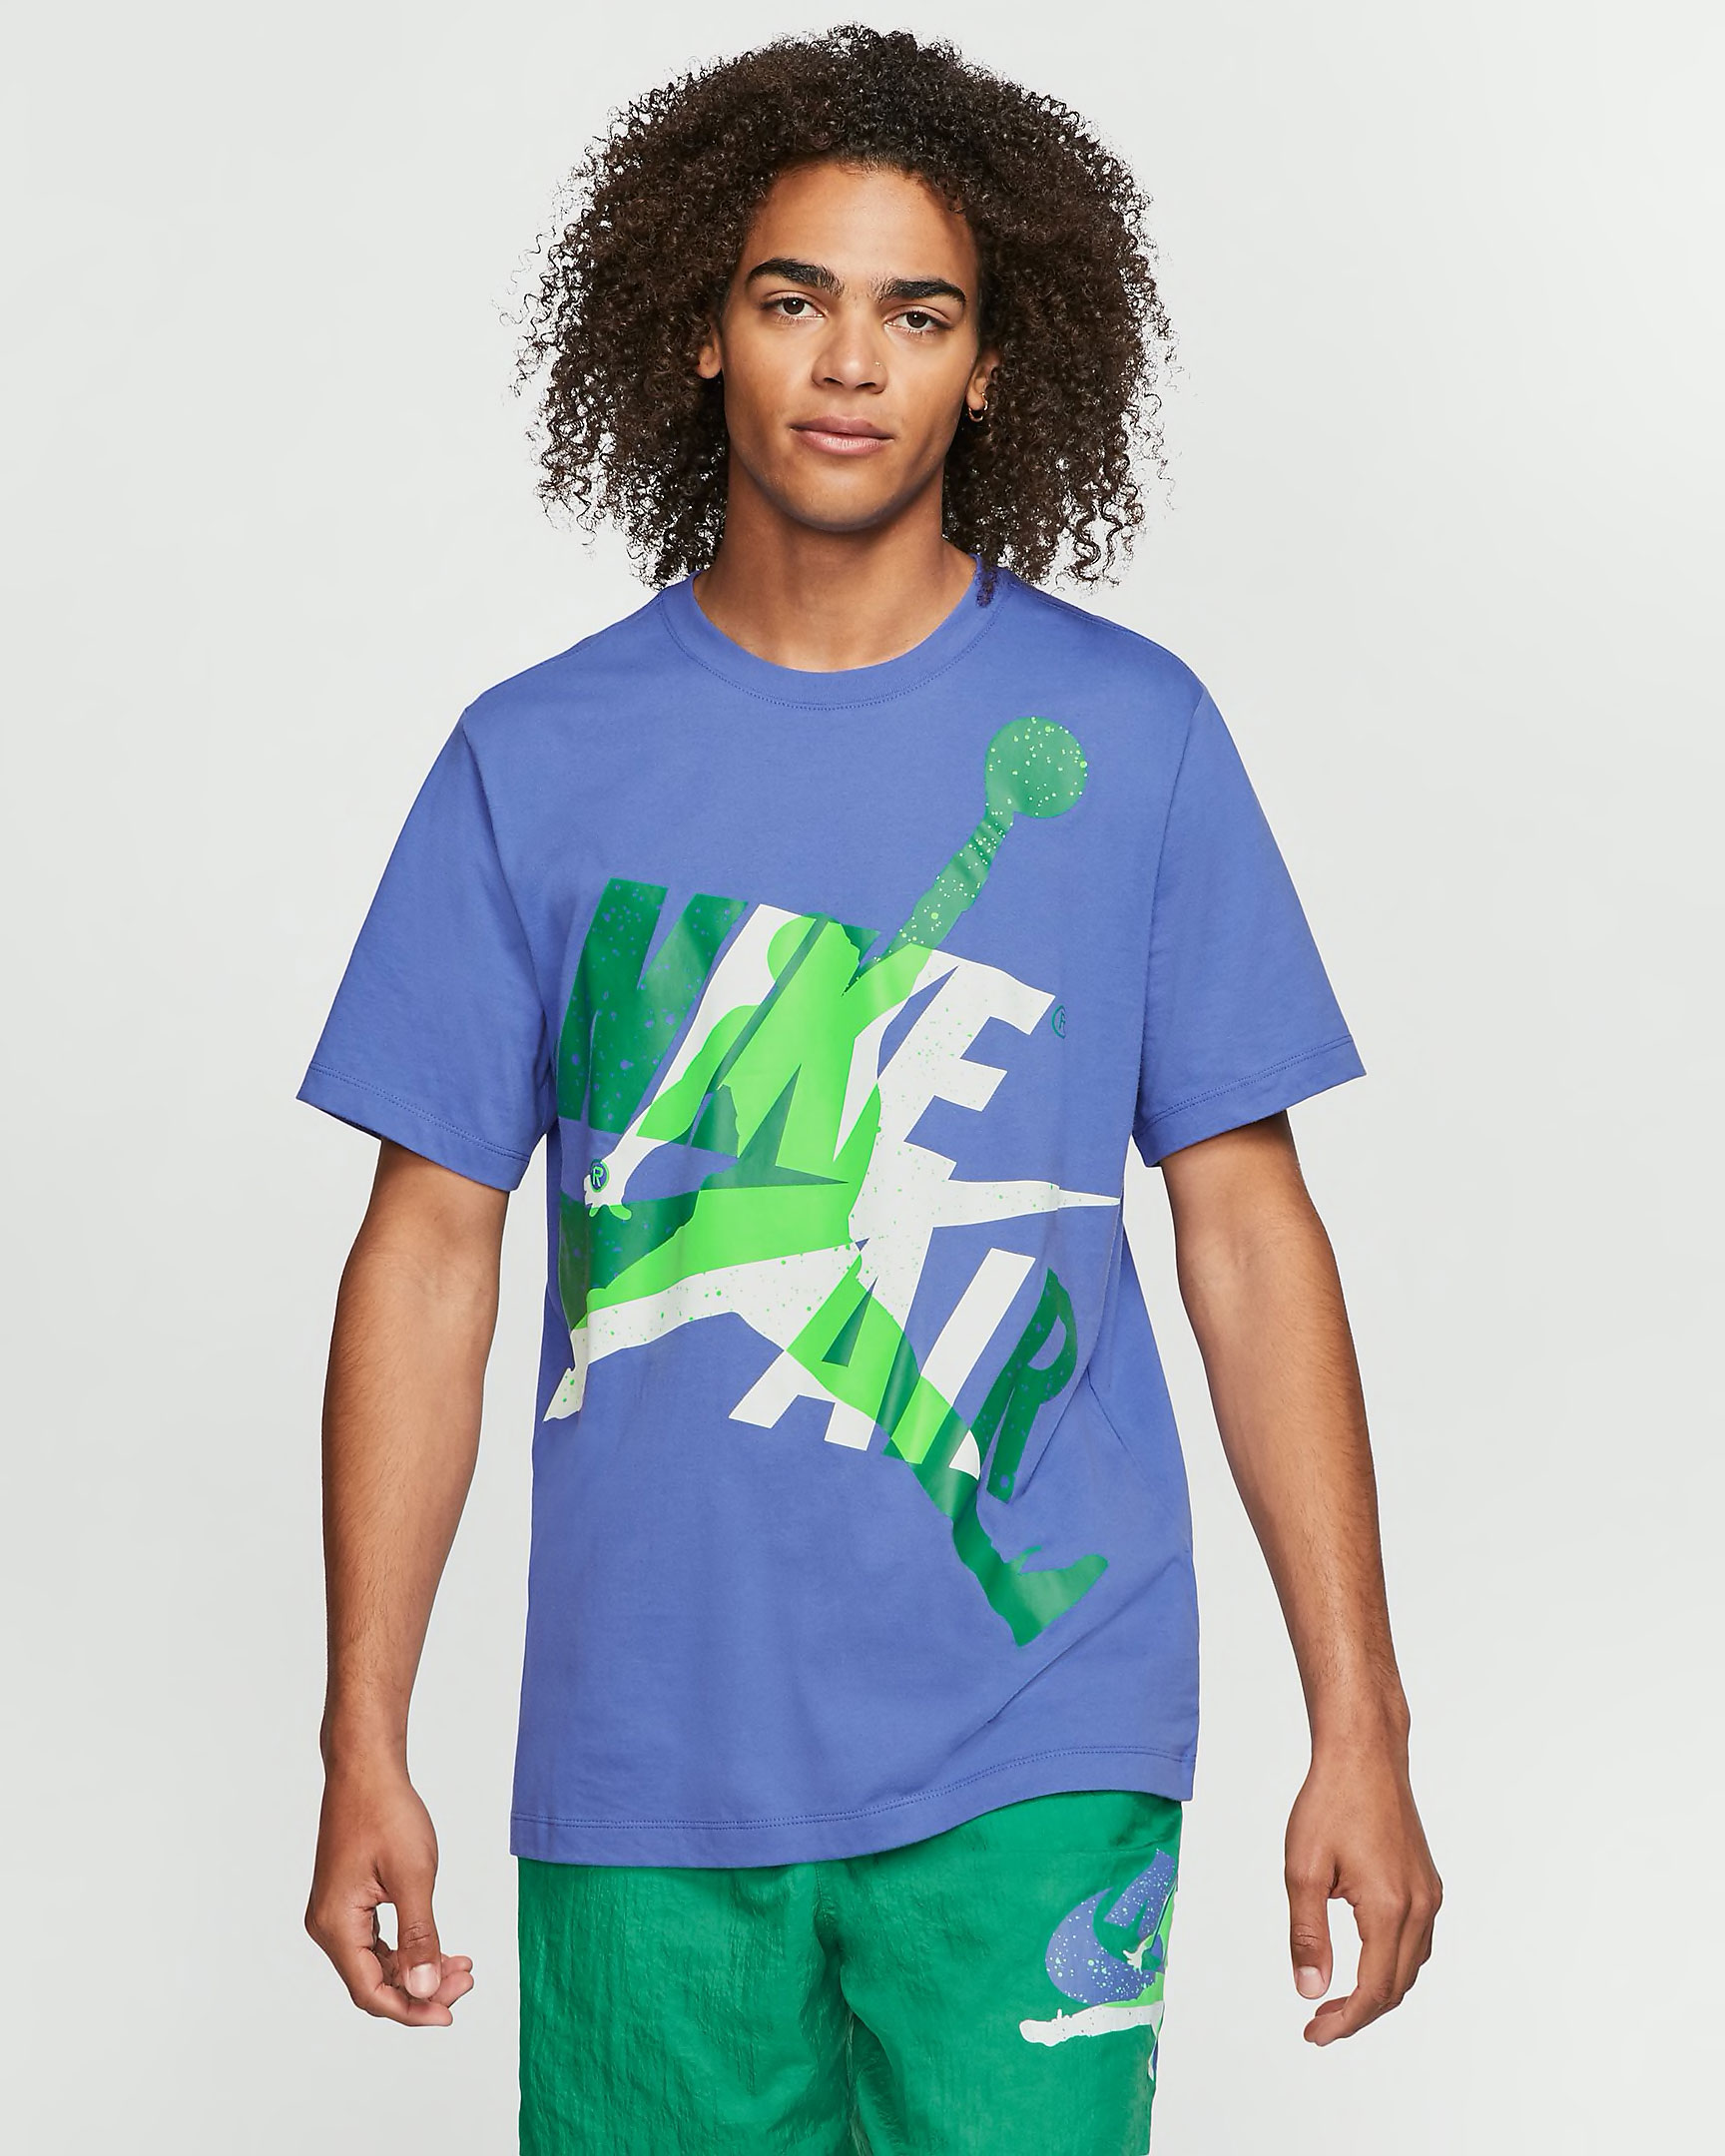 air-jordan-1-mid-hulk-tee-shirt